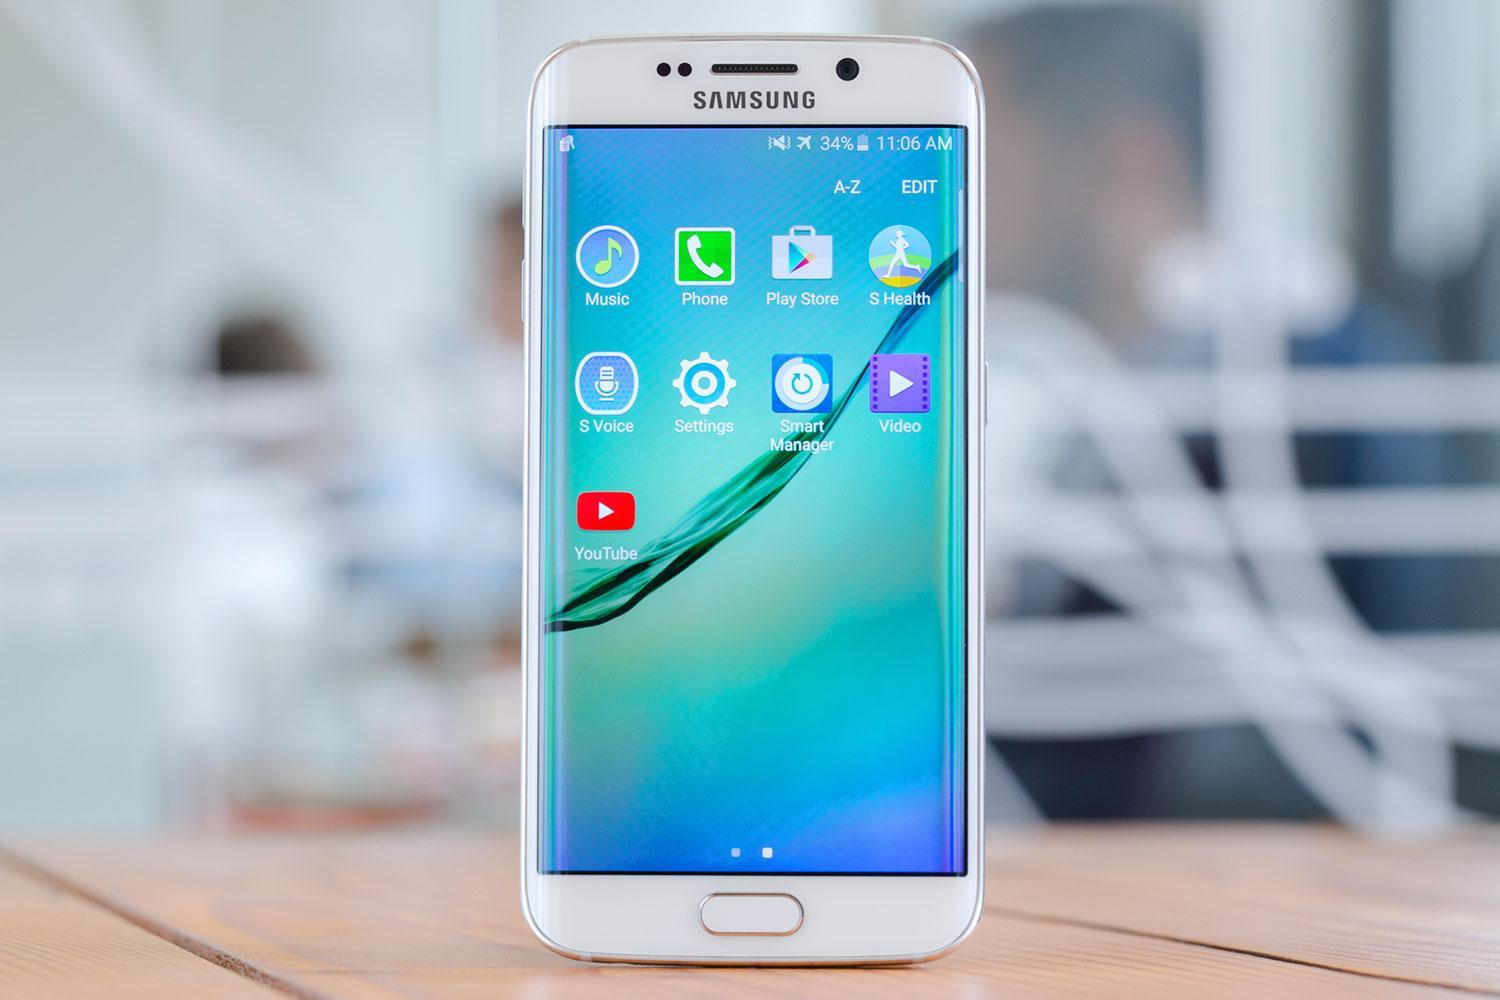 How to reset your Samsung Galaxy S6 or S6 Edge to factory